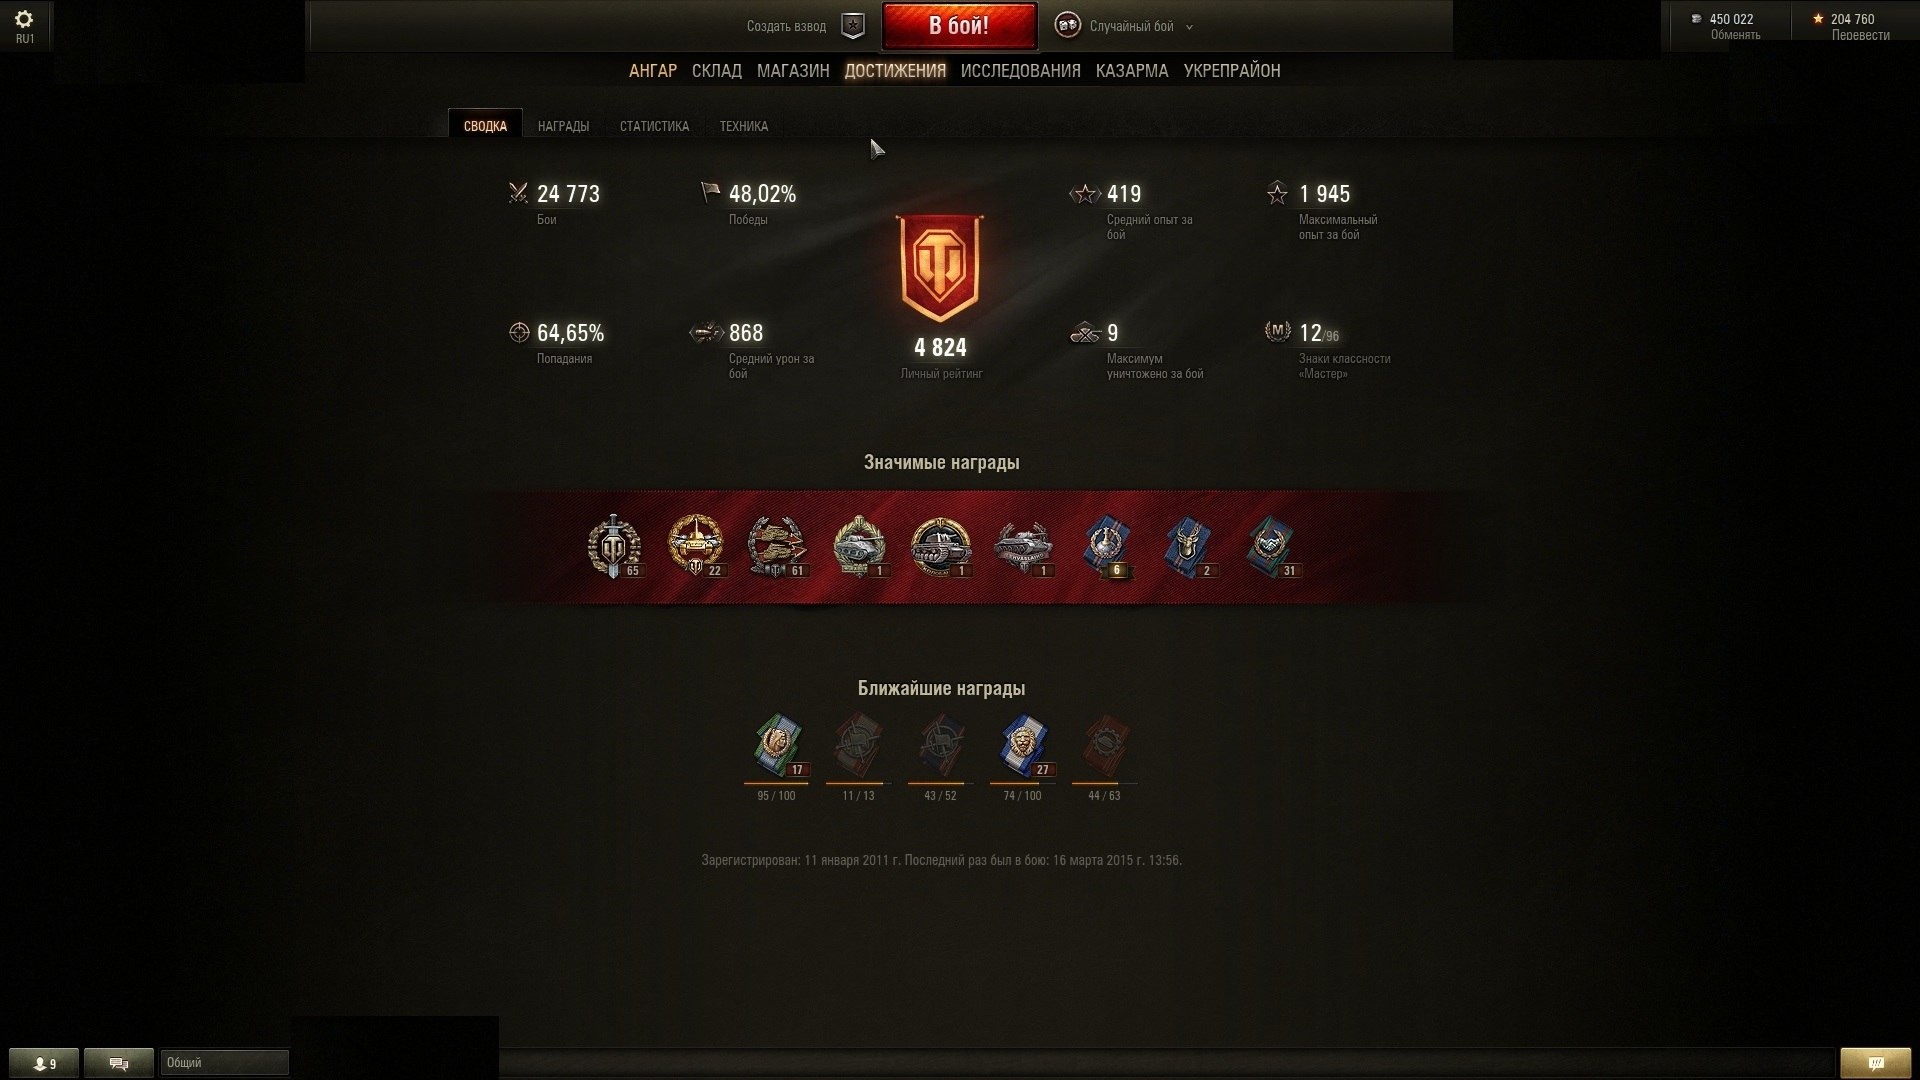 Statistics on my account in word of tanks